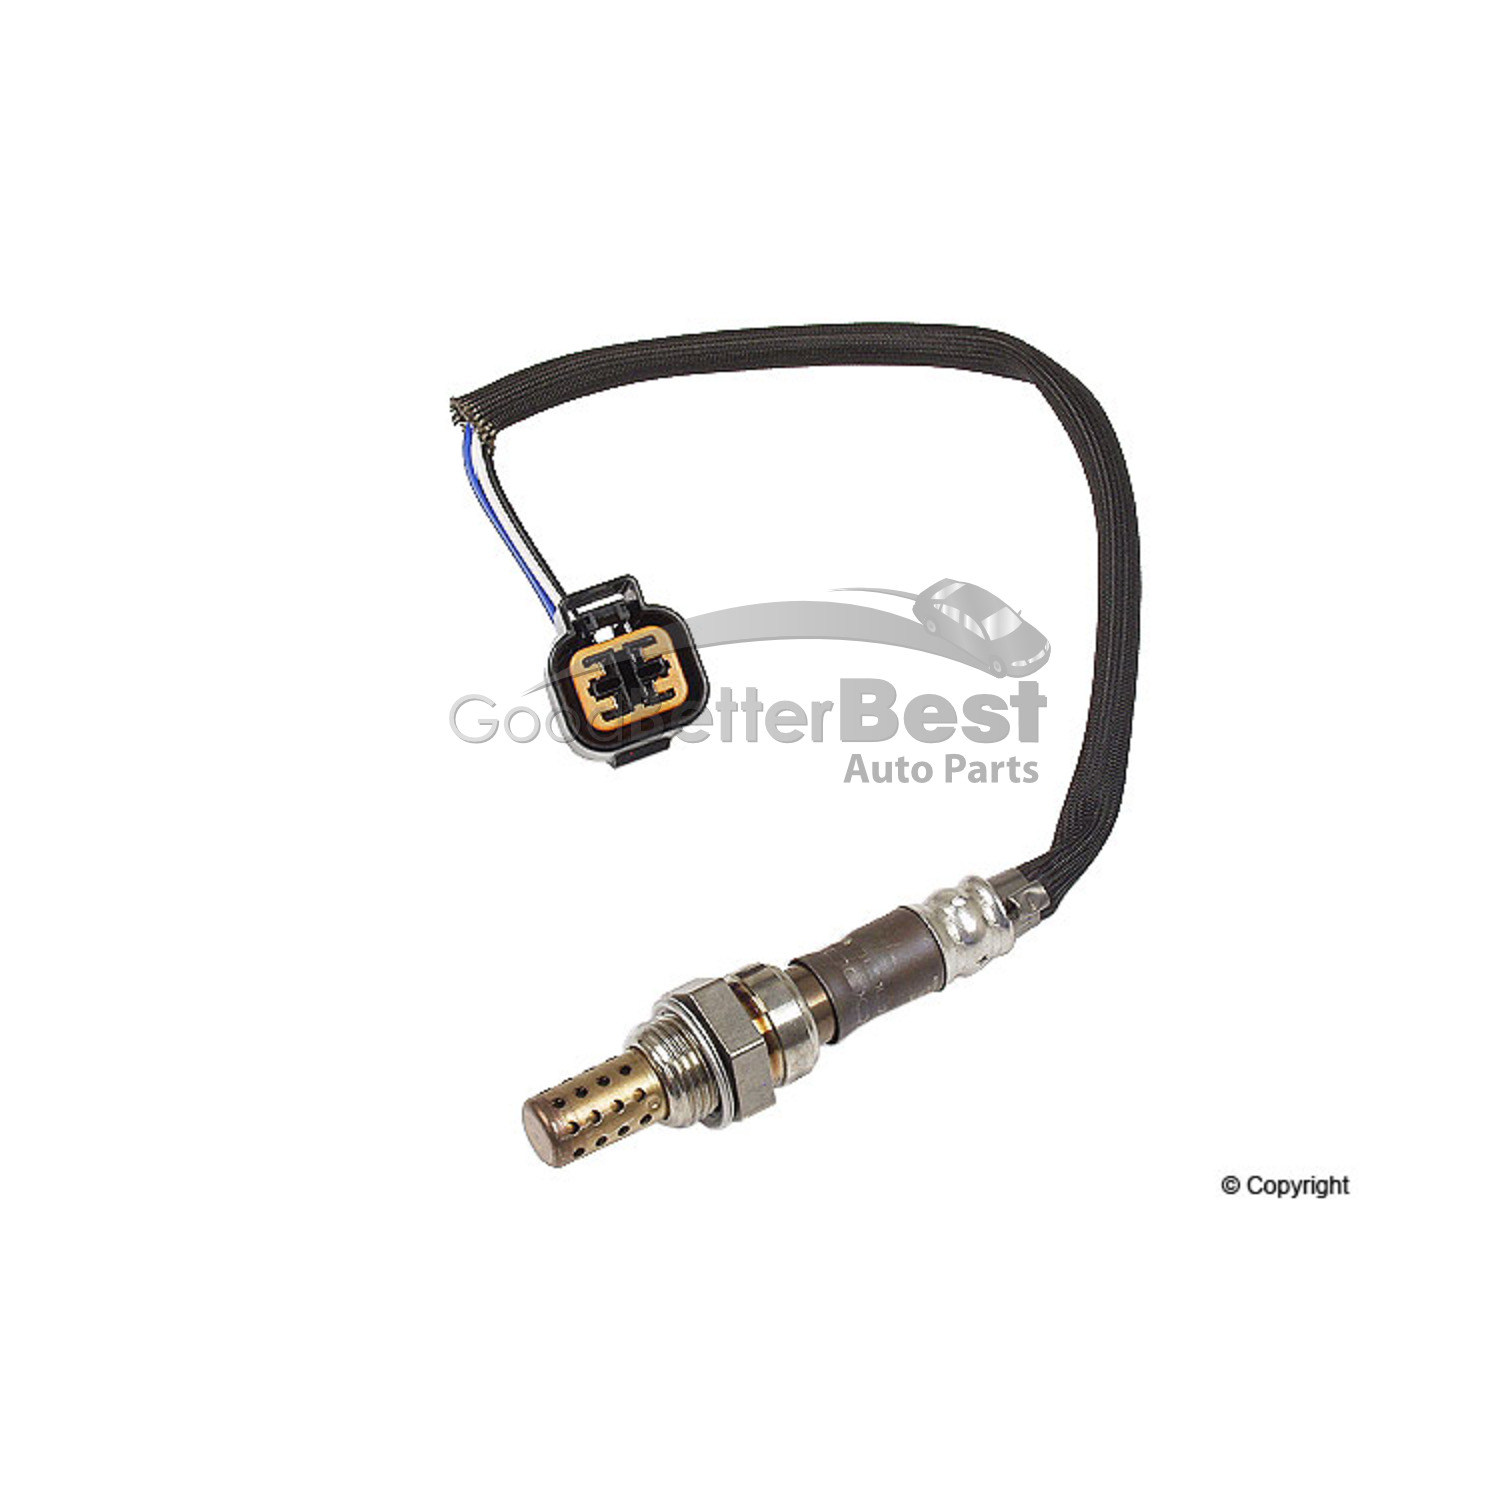 New Ntk Oxygen Sensor Rear For Hyundai Kia